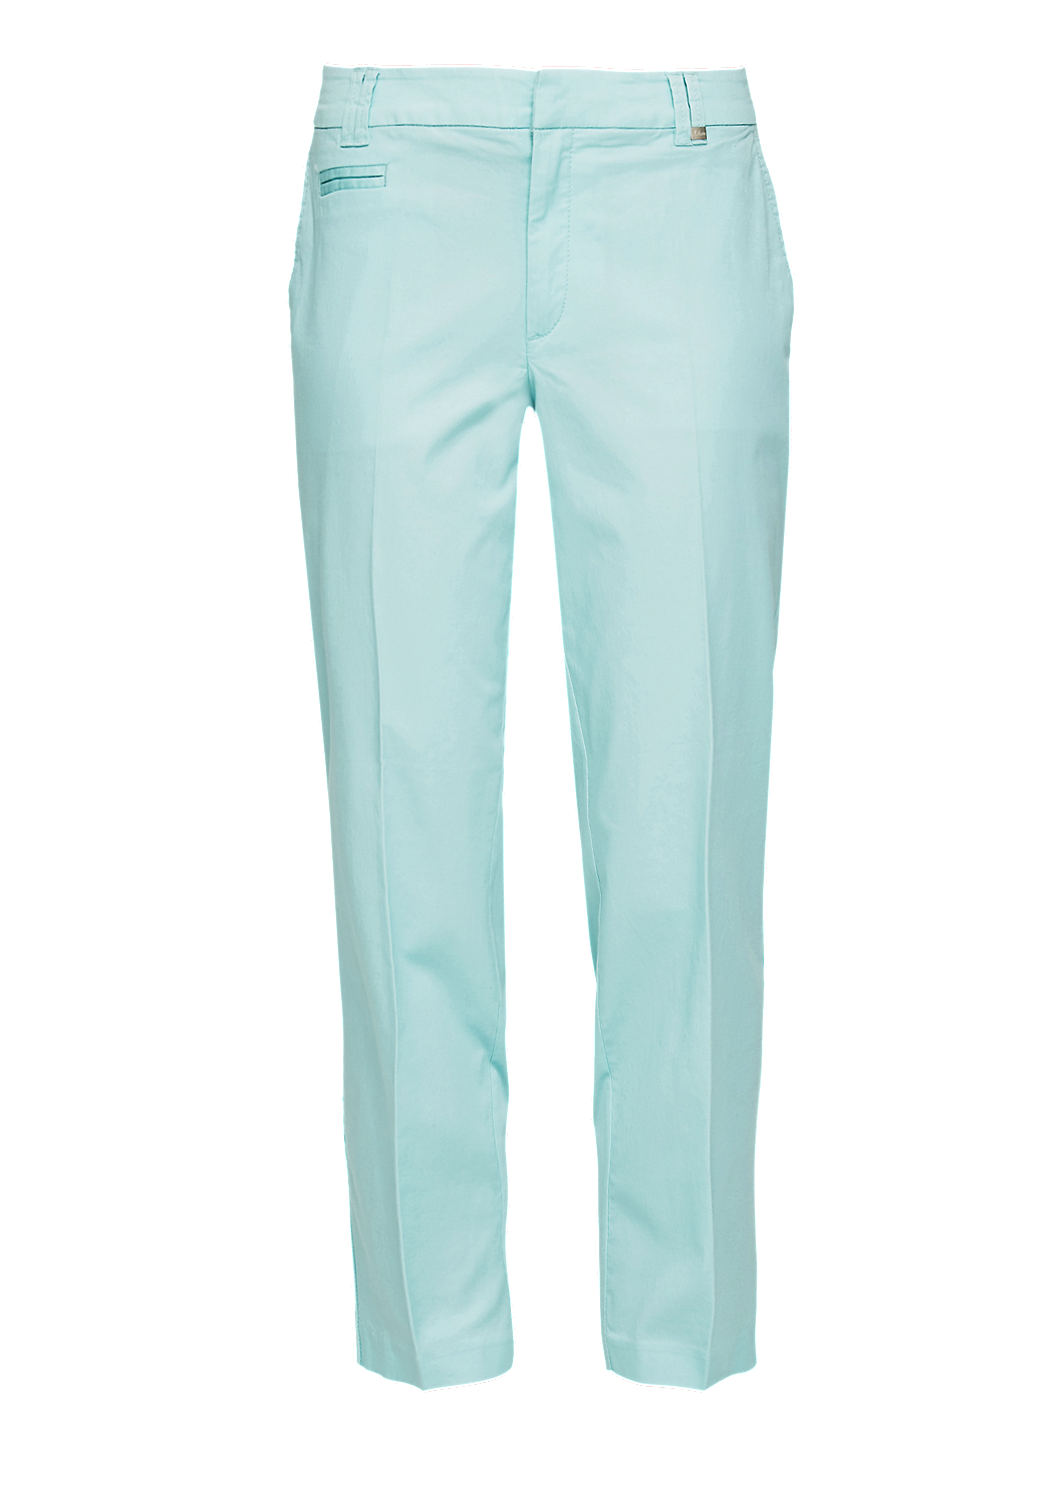 s.Oliver - Shape Ankle: Leichte Chino - 4